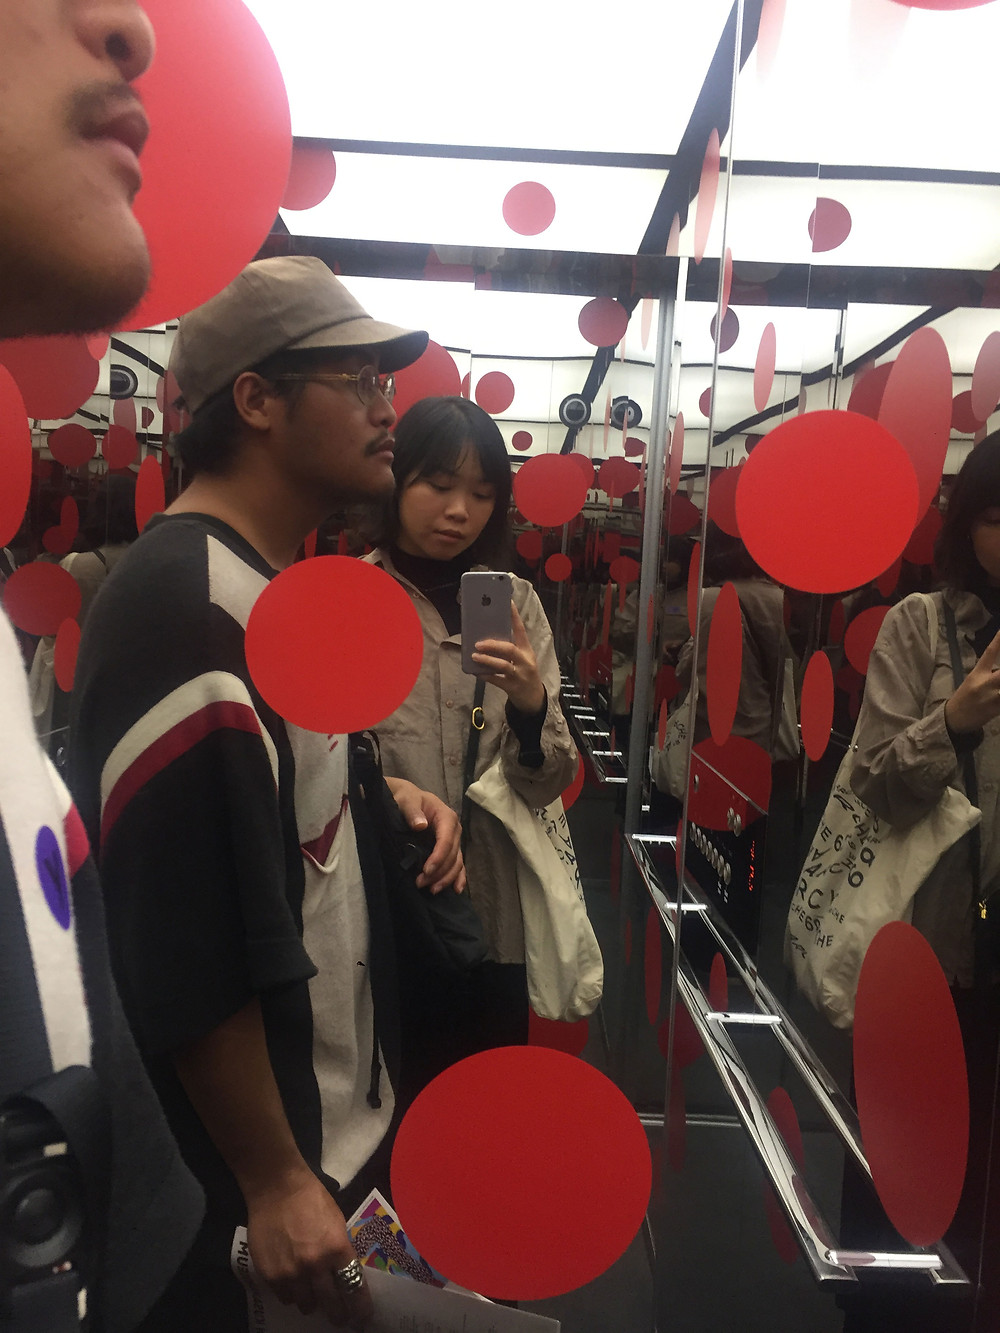 Angela and Rowland in the Yayoi Kusama Museum elevator surrounded by red circles